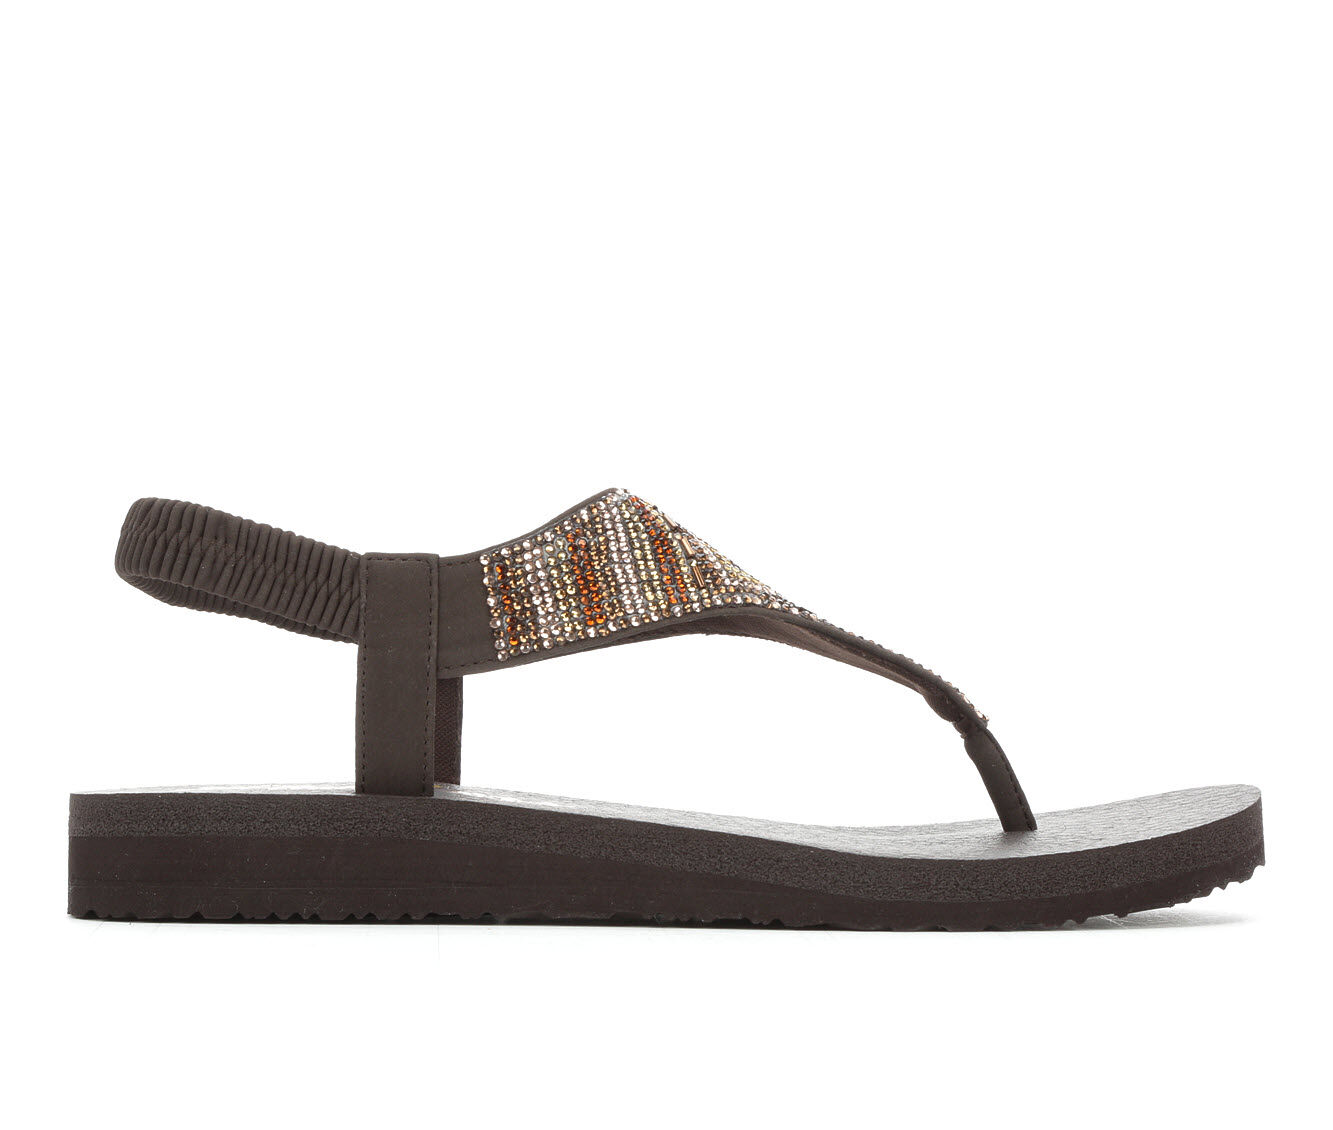 Women's Skechers Cali Meditation Gypsy Glam 31769 Sandals Chocolate